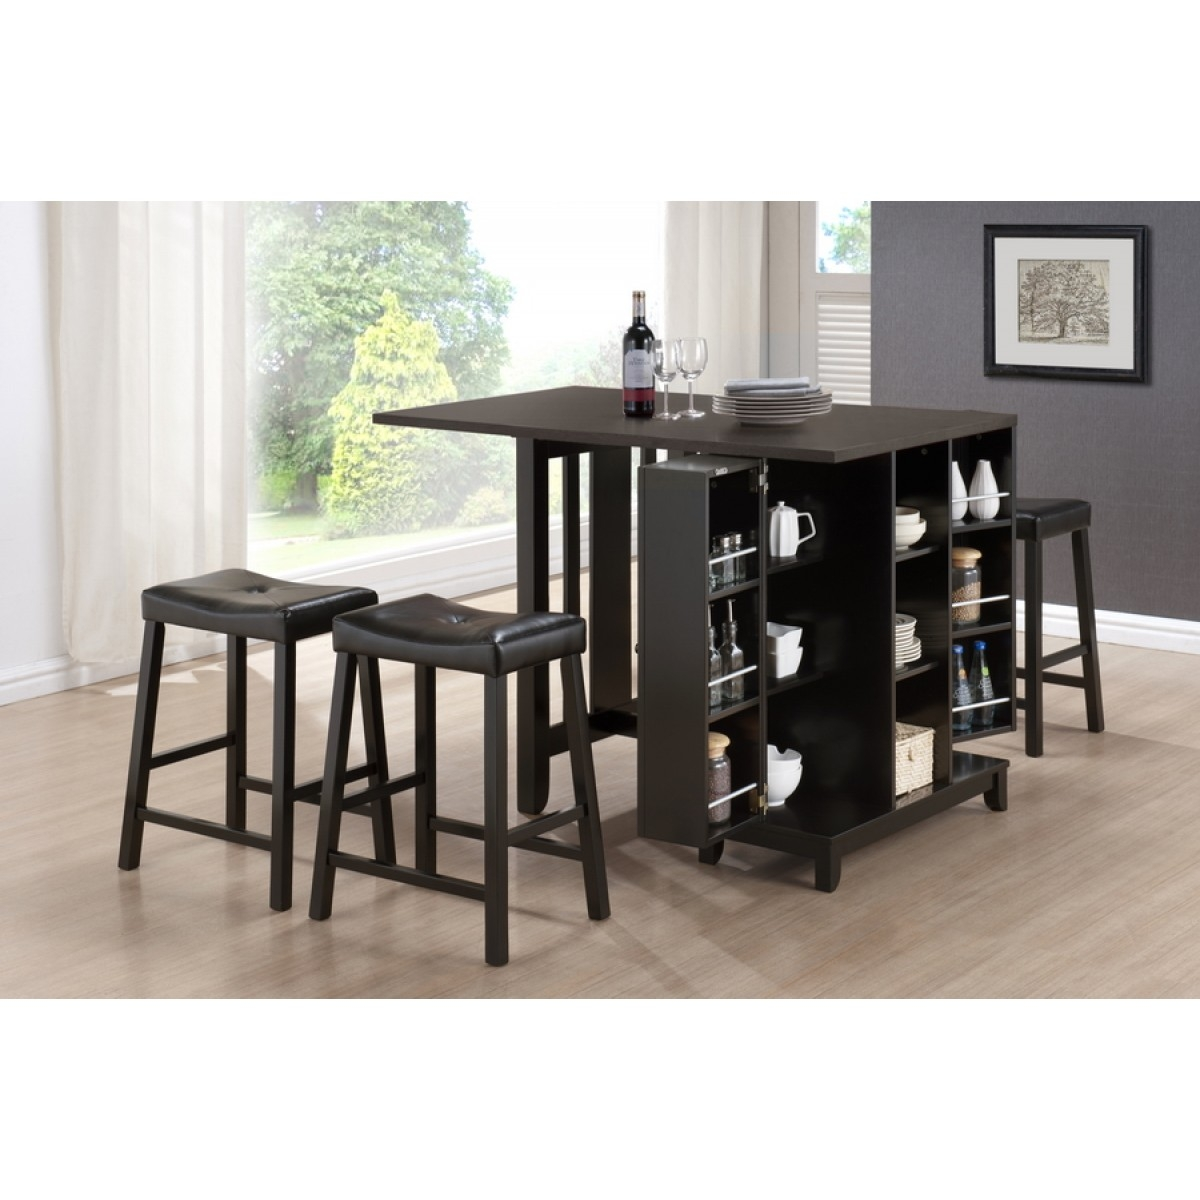 Pub table and chair sets & Pub Tables And Chair Sets - Foter